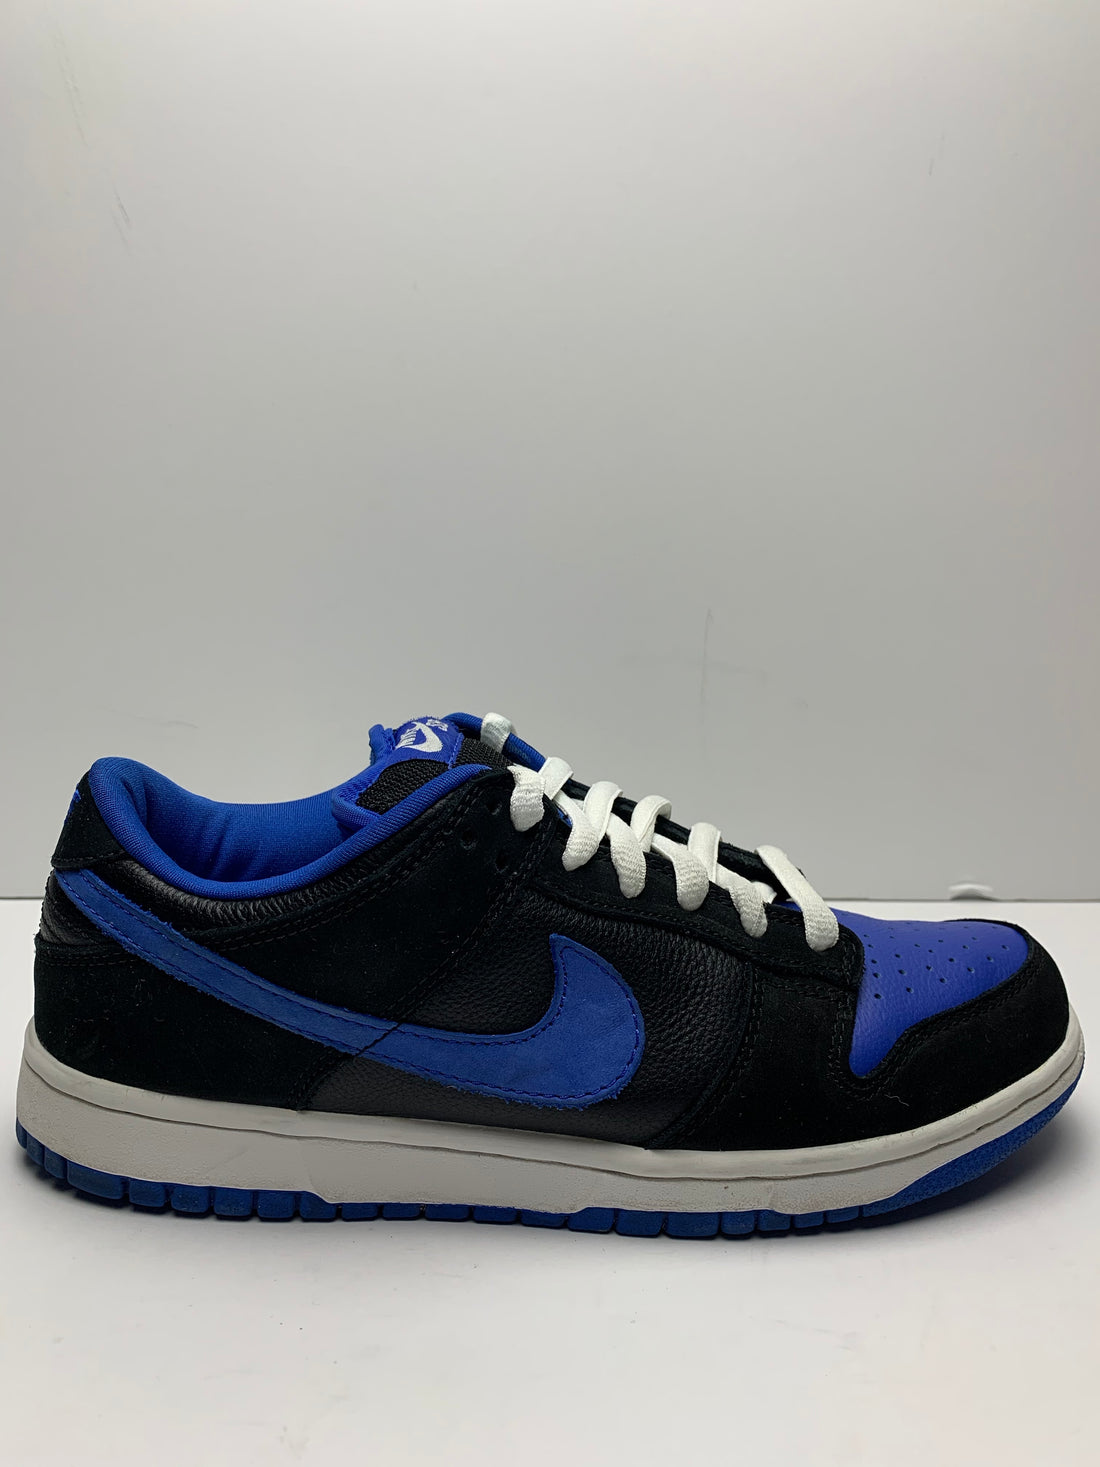 Nike Dunk SB Low J Pack Royal